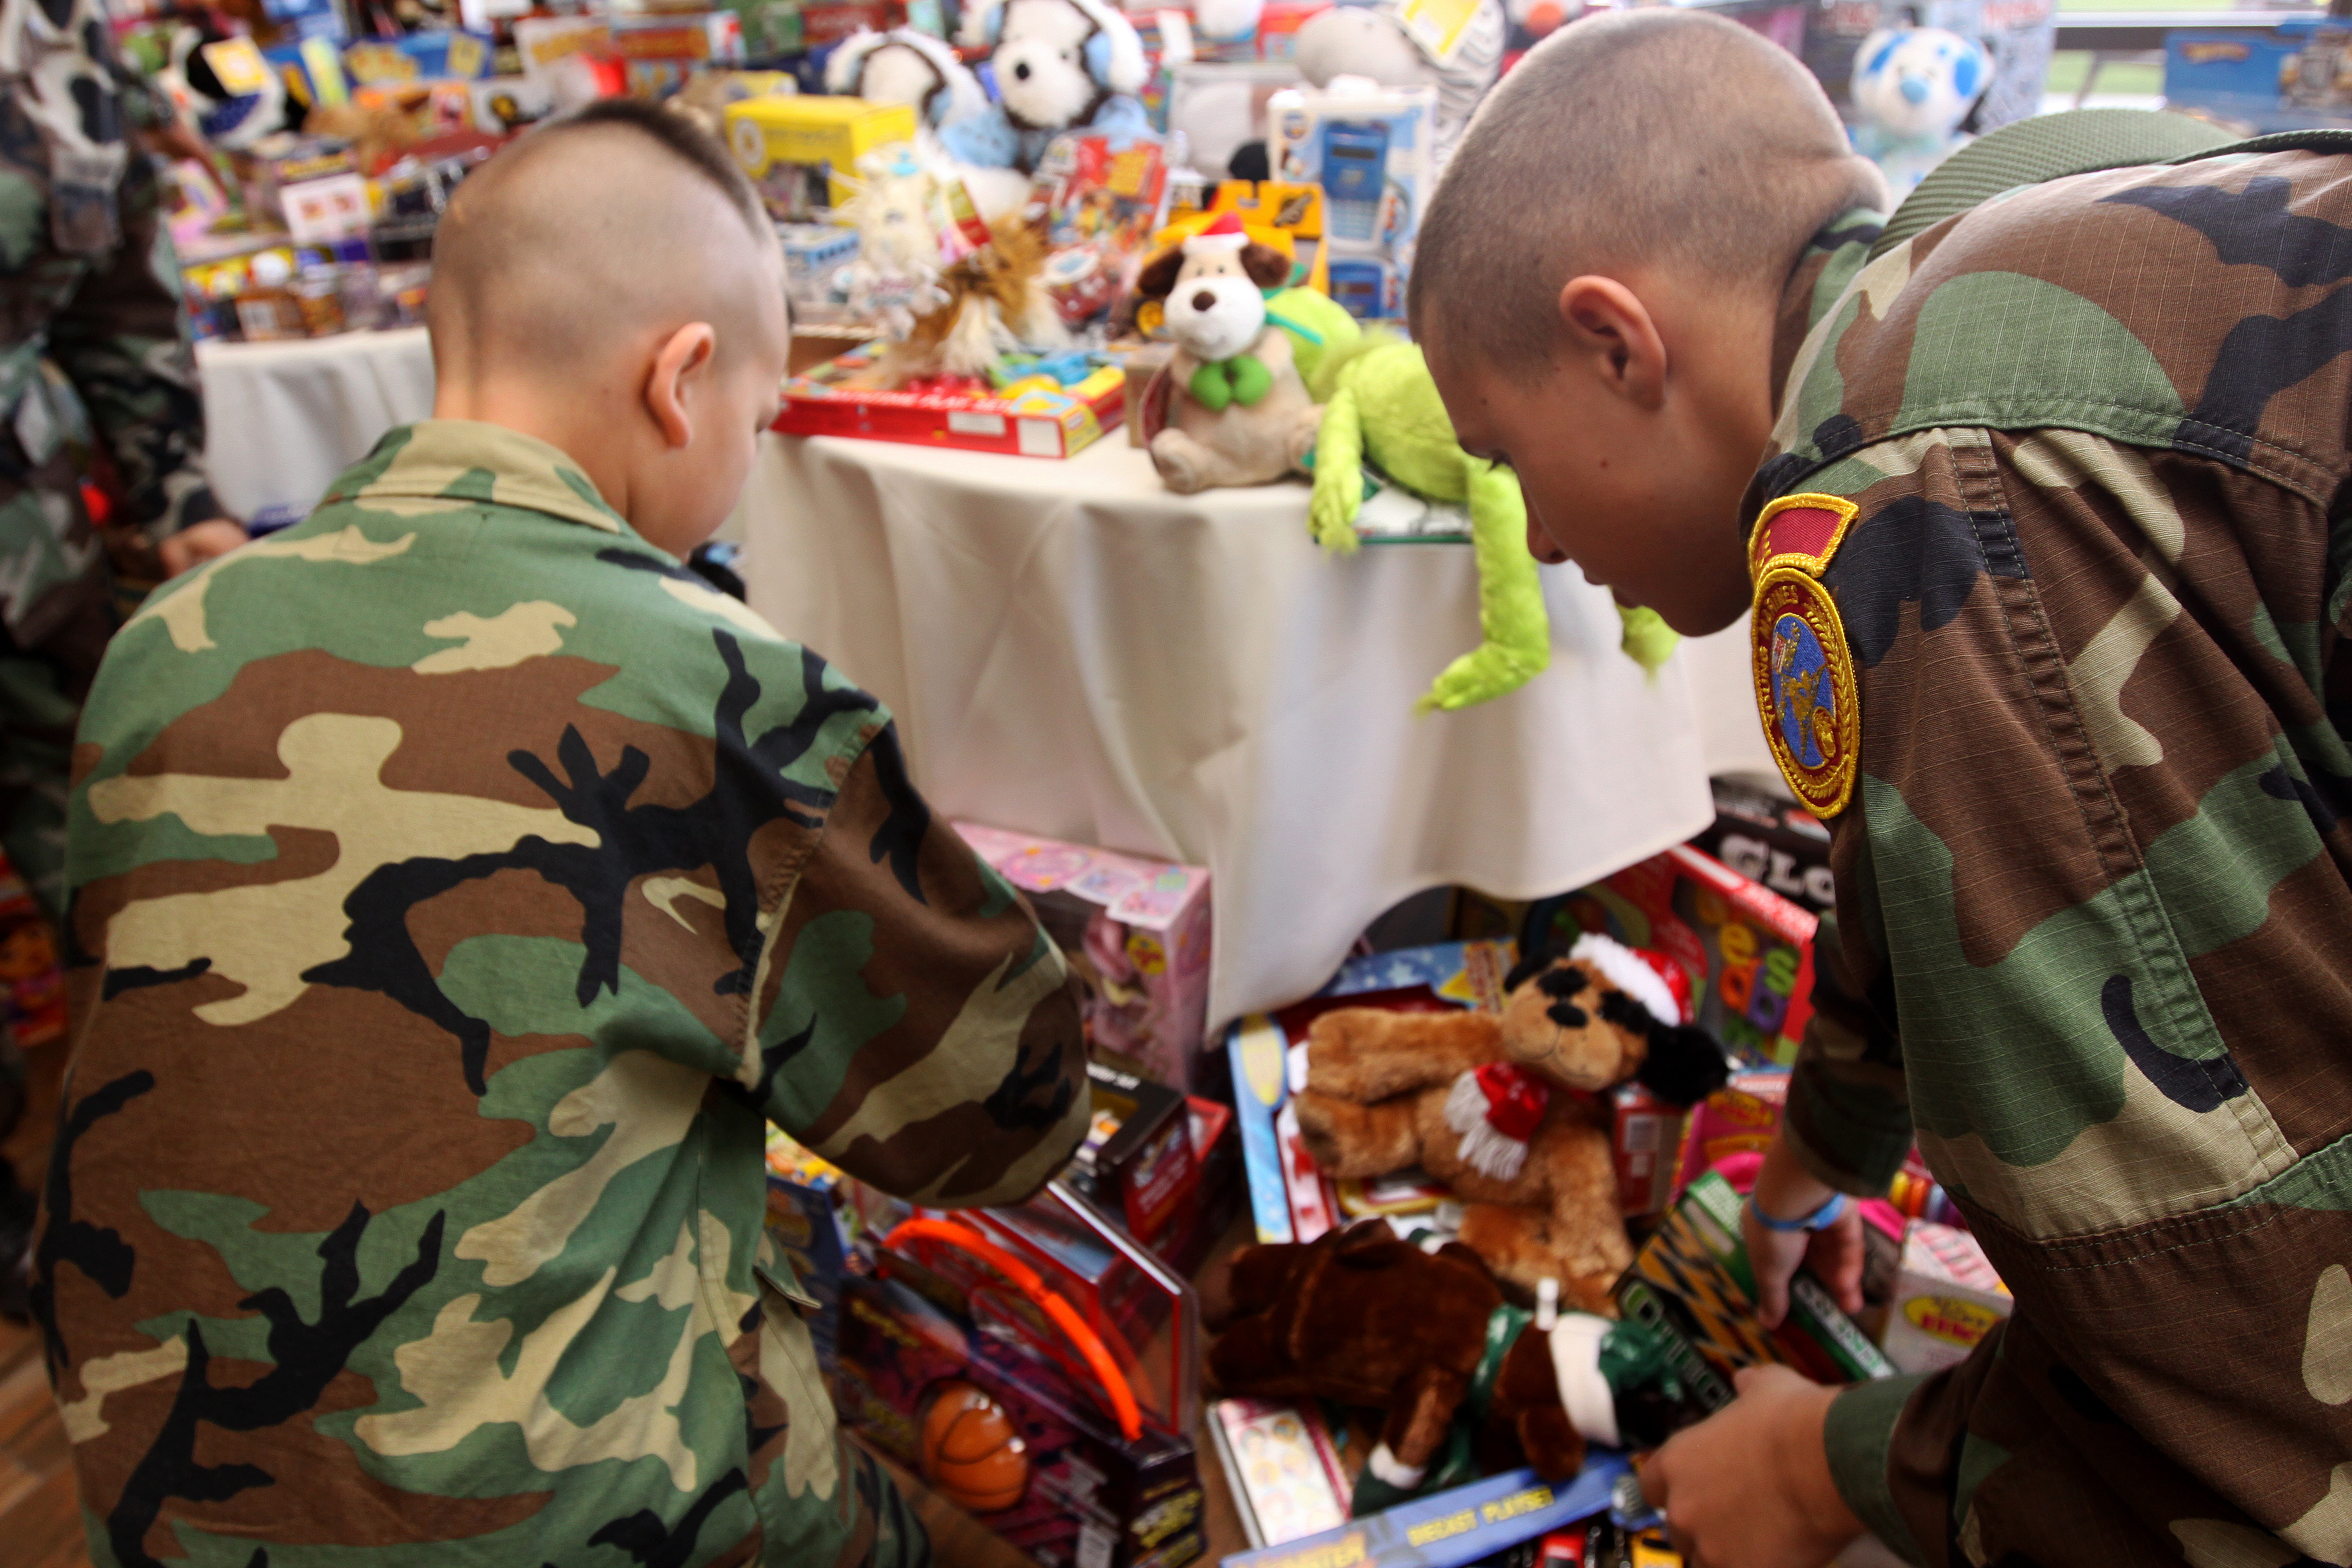 Eagle Young Marines staging a display of toys being donated to less-fortunate children through Toys For Tots. (Credit: US Marine Corps)